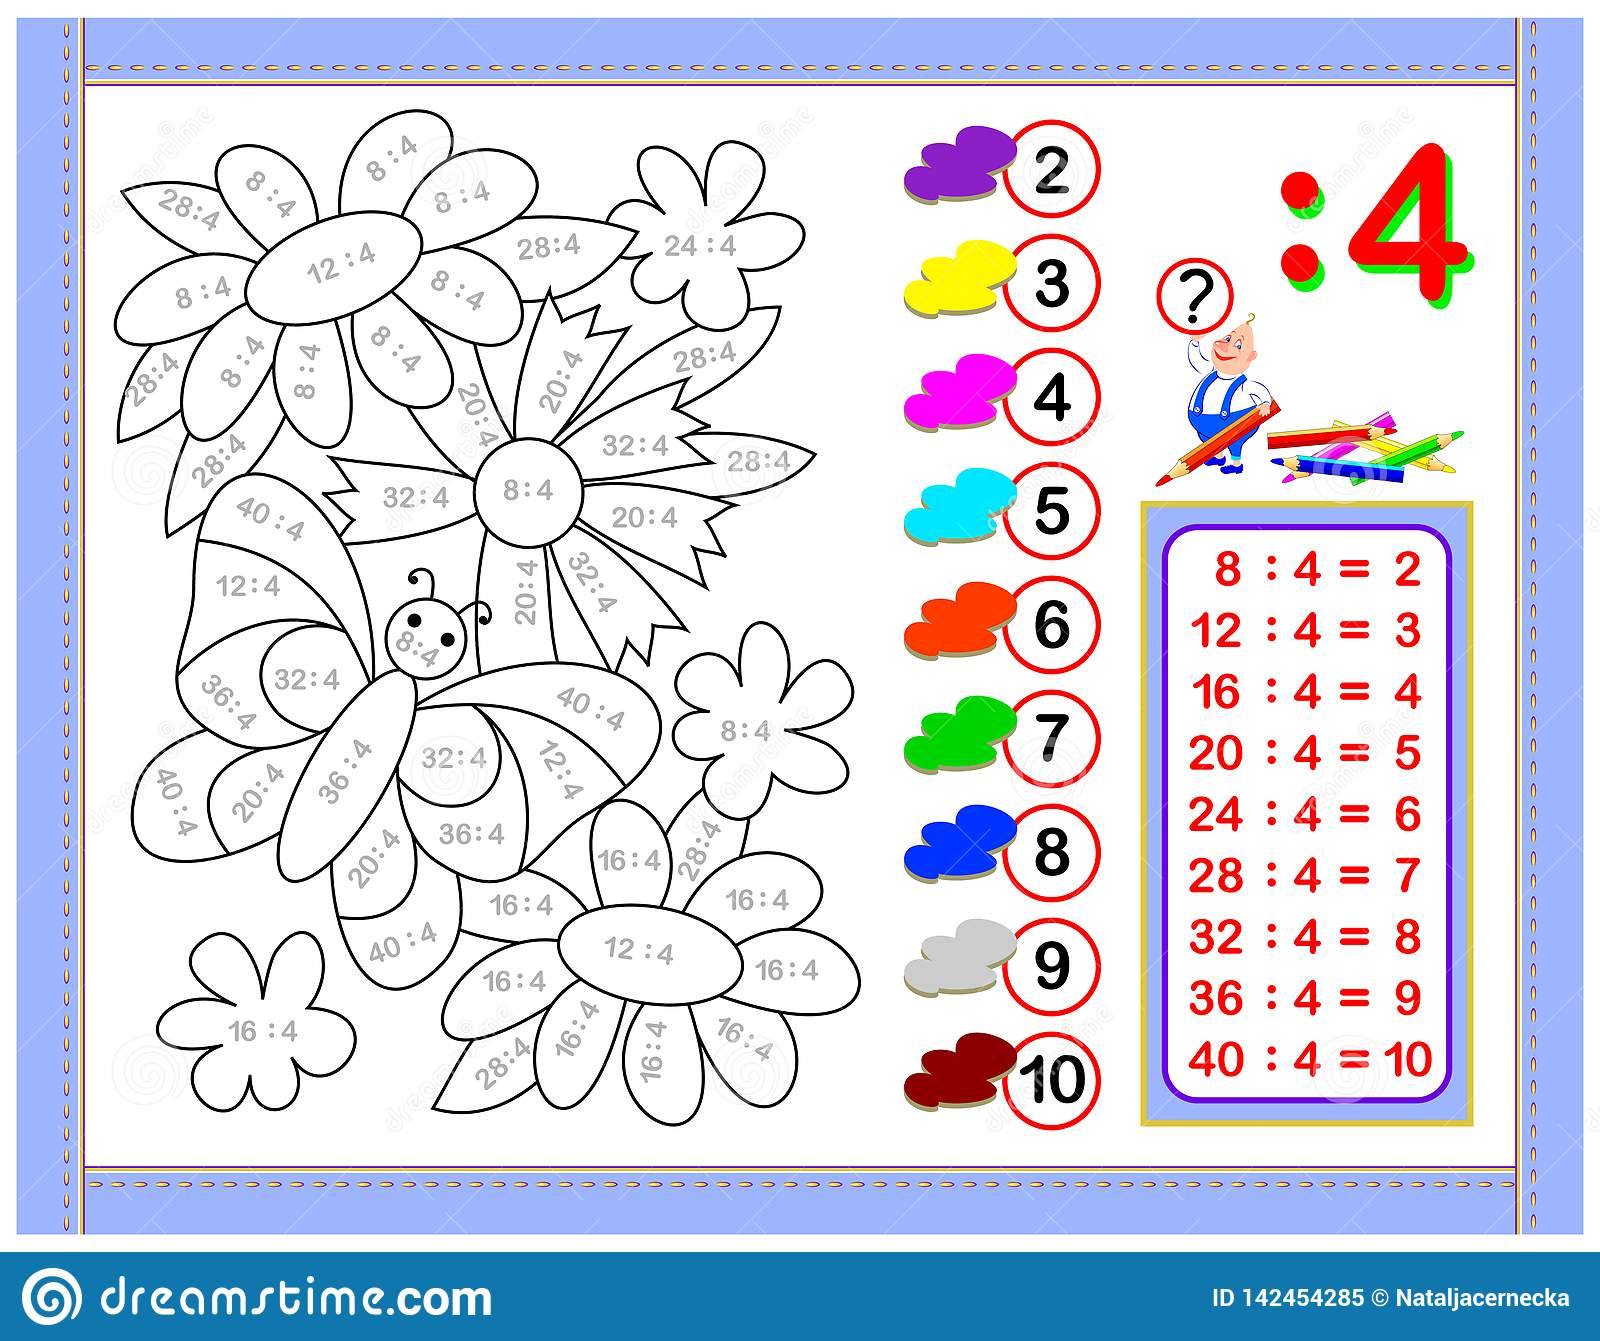 Exercises For Kids With Division By Number 4 Paint The